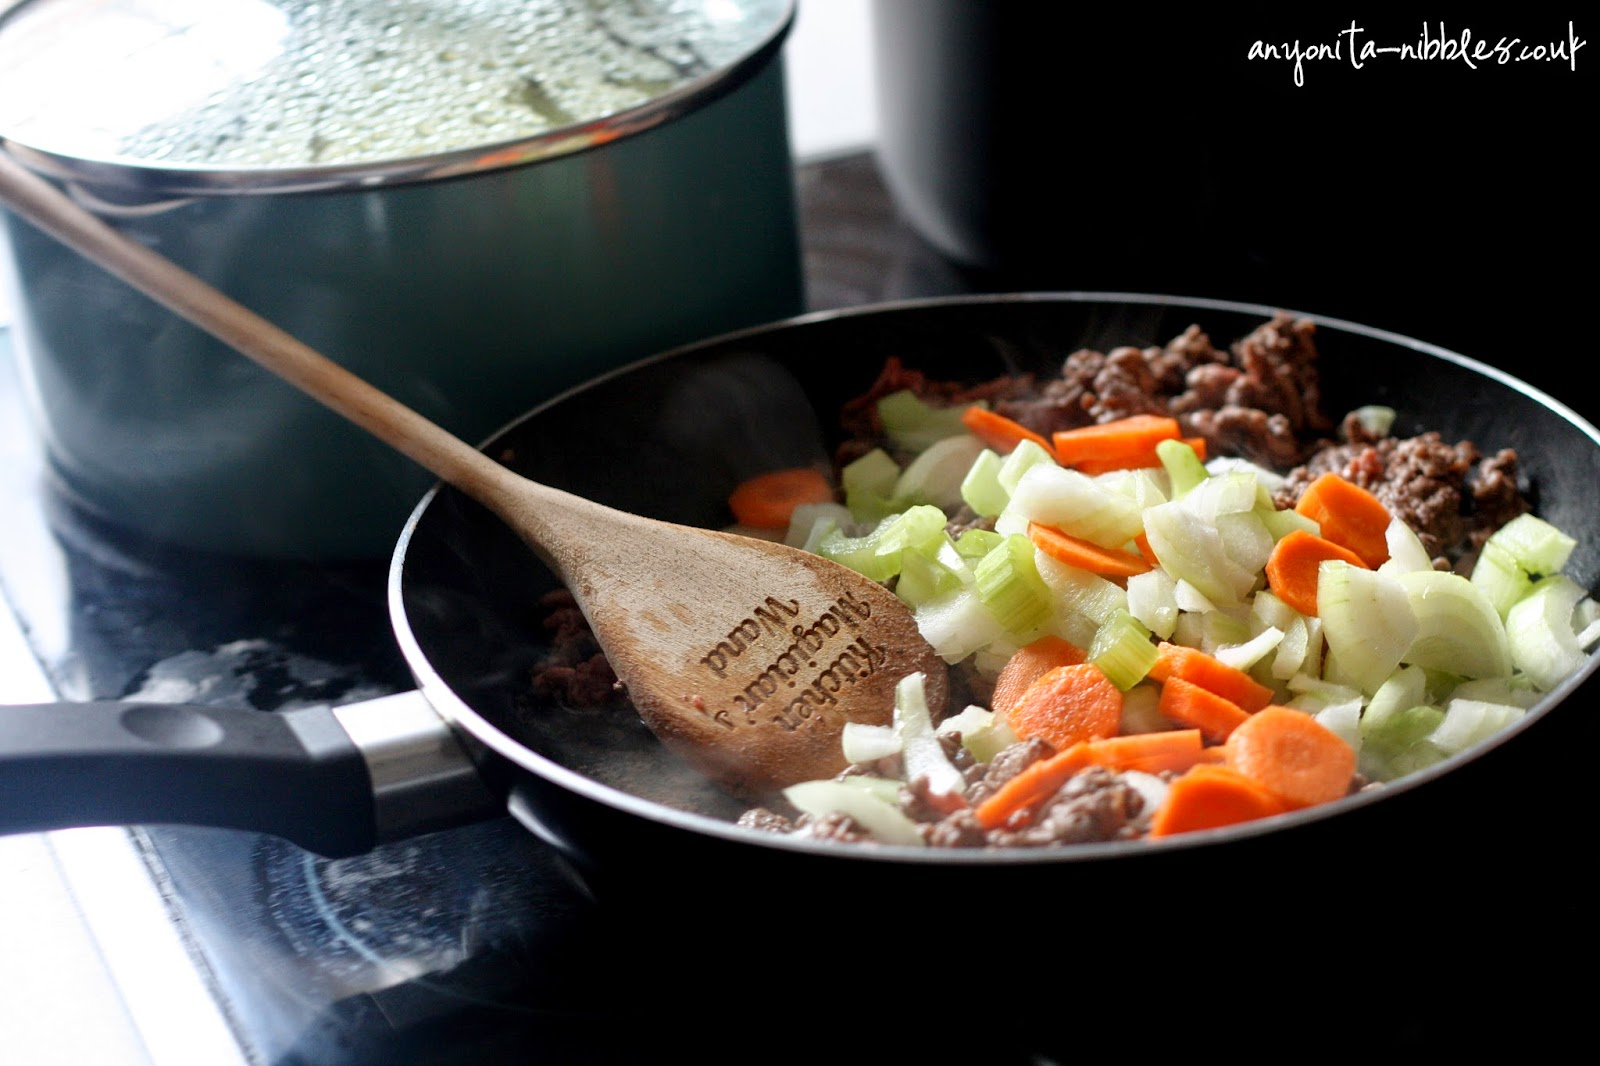 Cottage pie filling from Anyonita-nibbles.co.uk